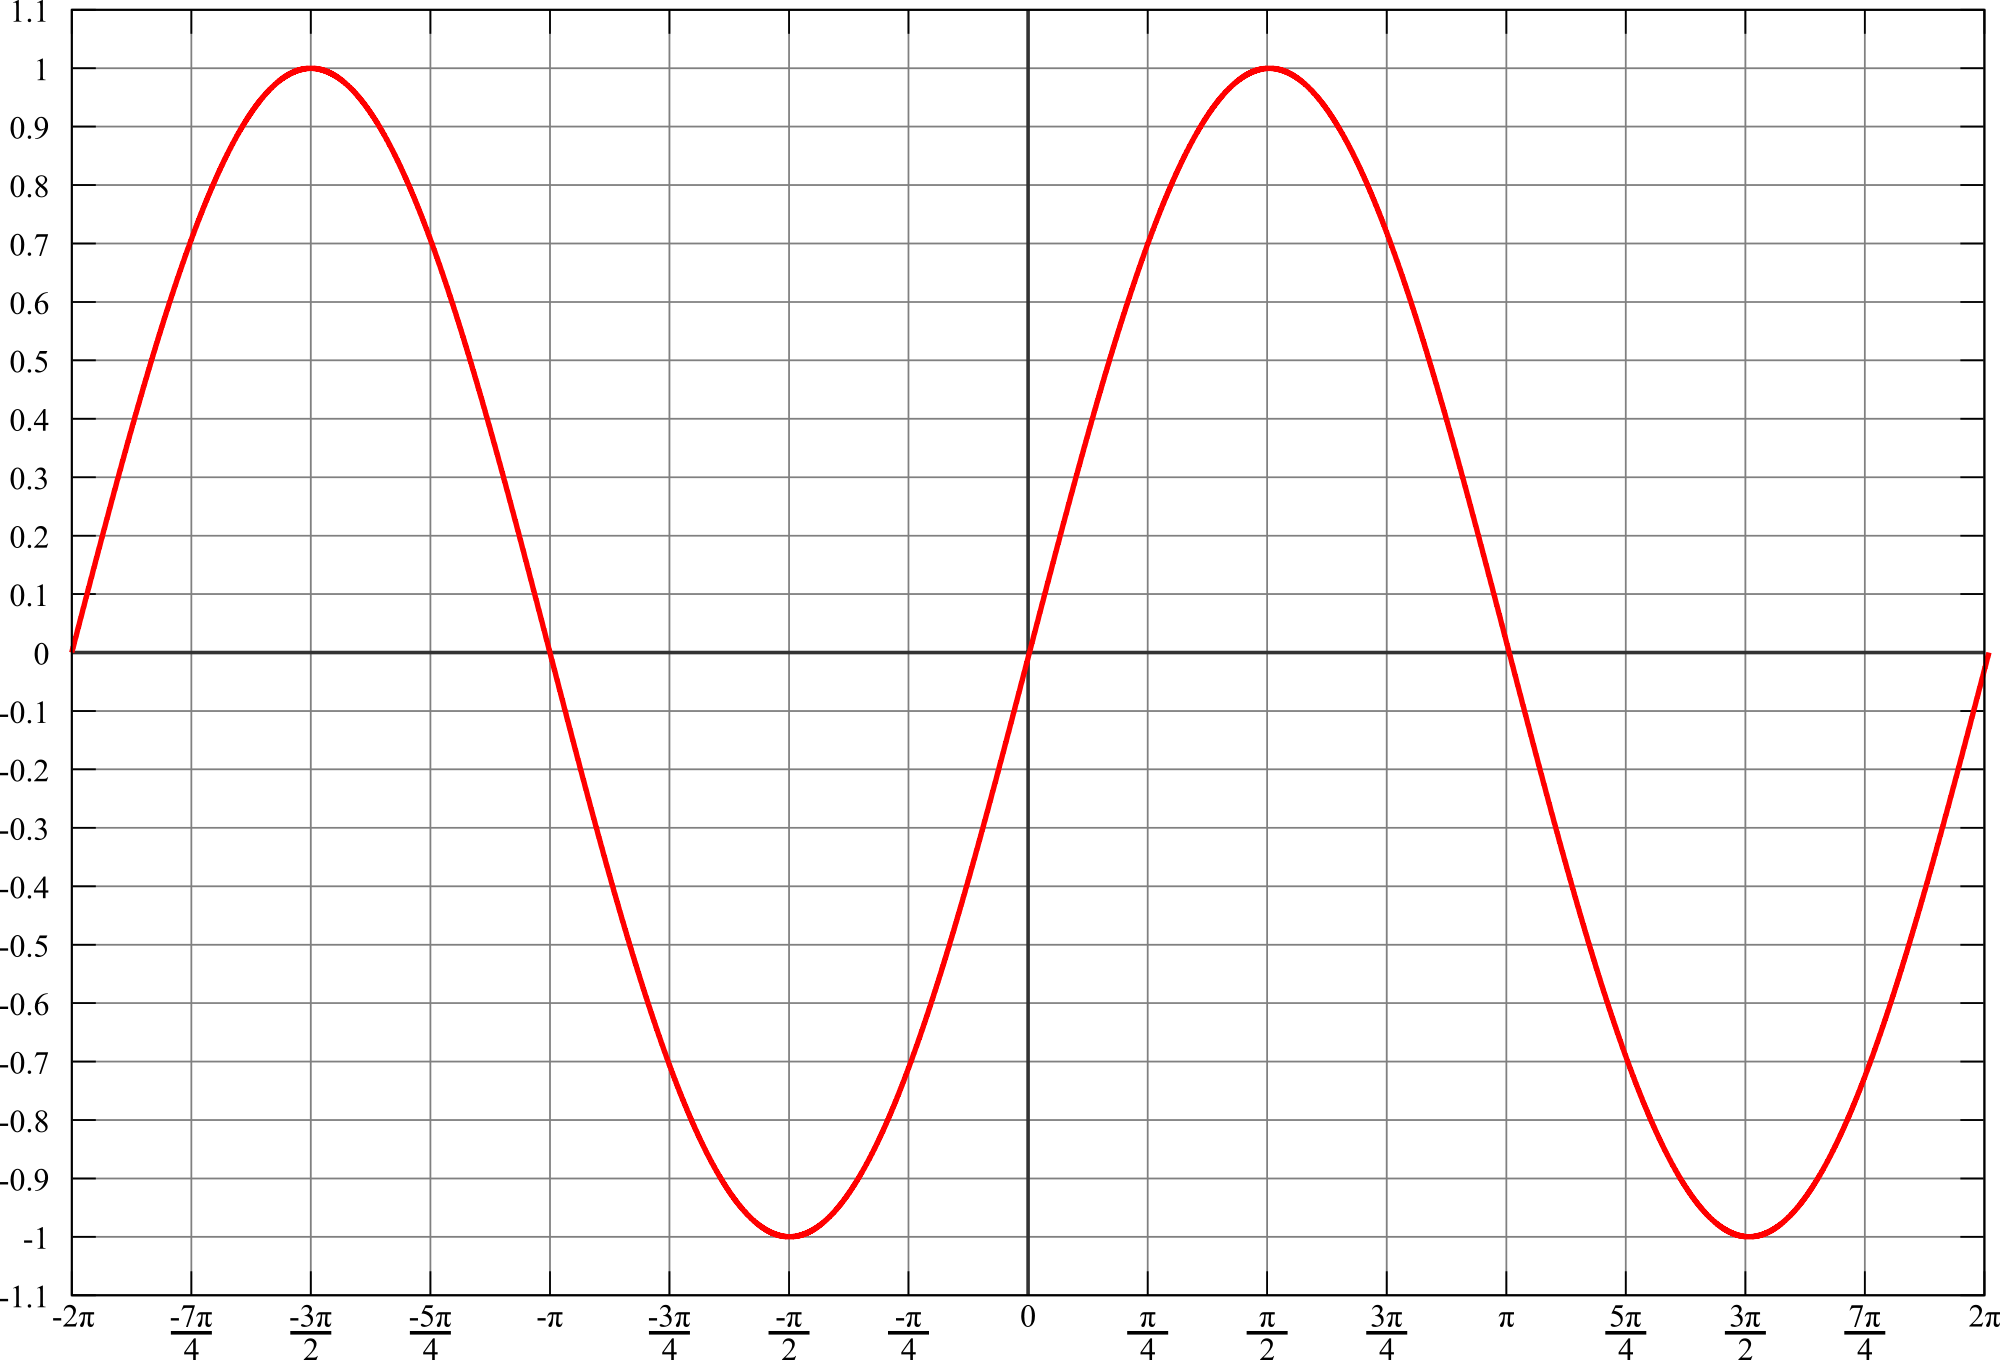 body_sin_graph.png